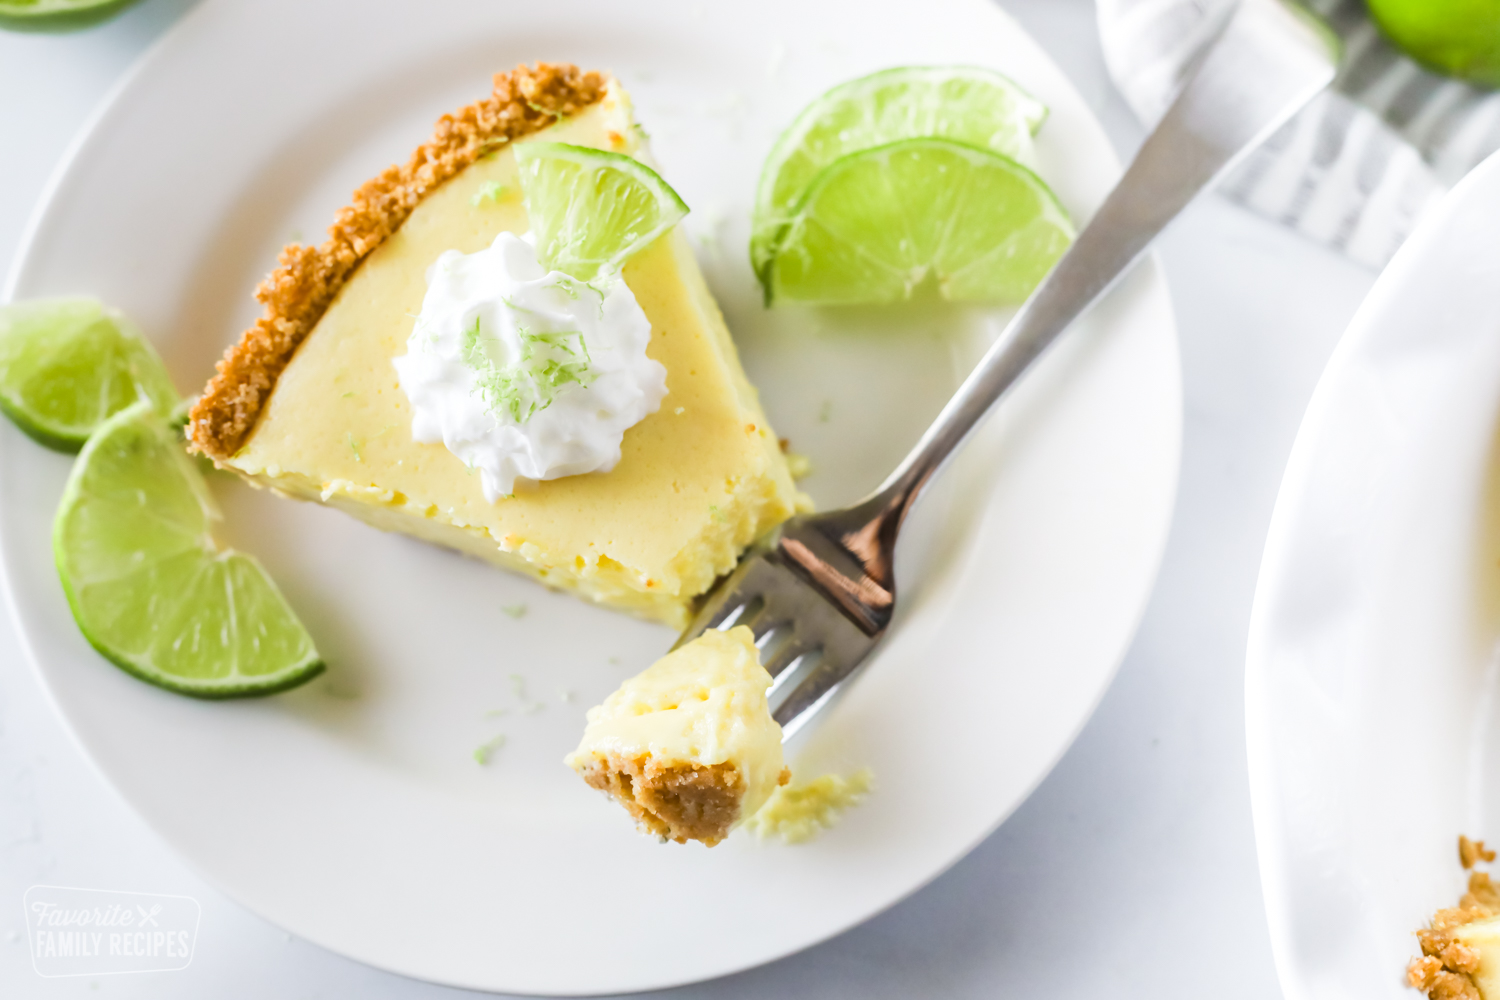 A slice of key lime pie with a graham cracker crust and a bite on a fork